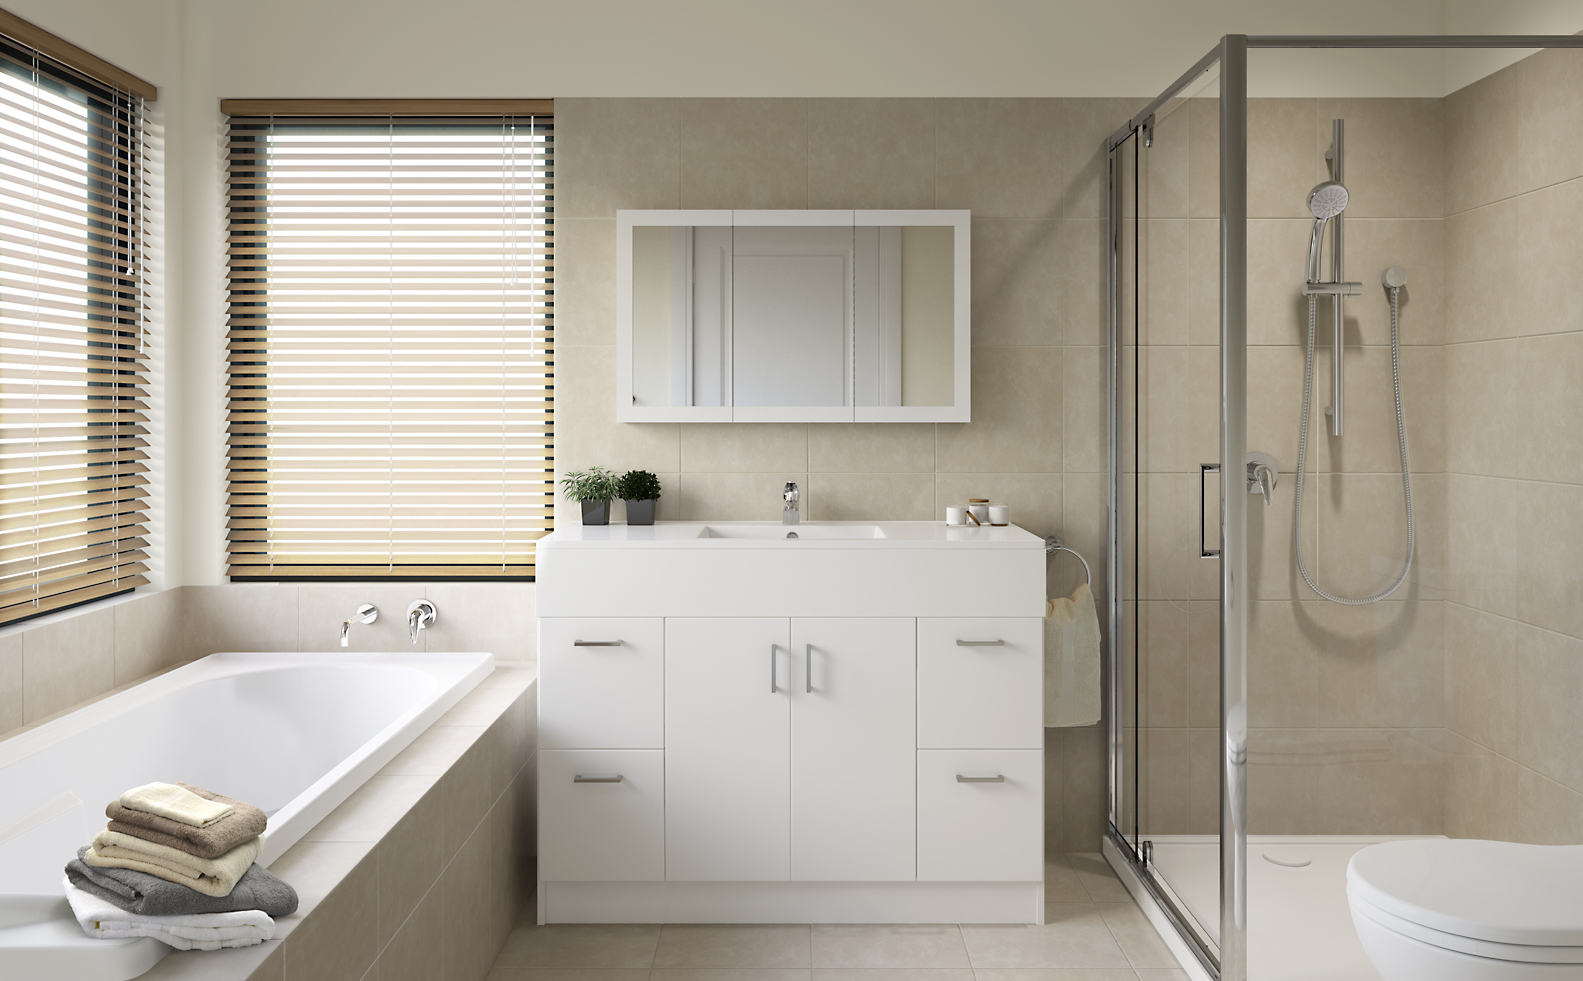 bathroom inspiration gallery bunnings warehouse - Bathroom Inspiration